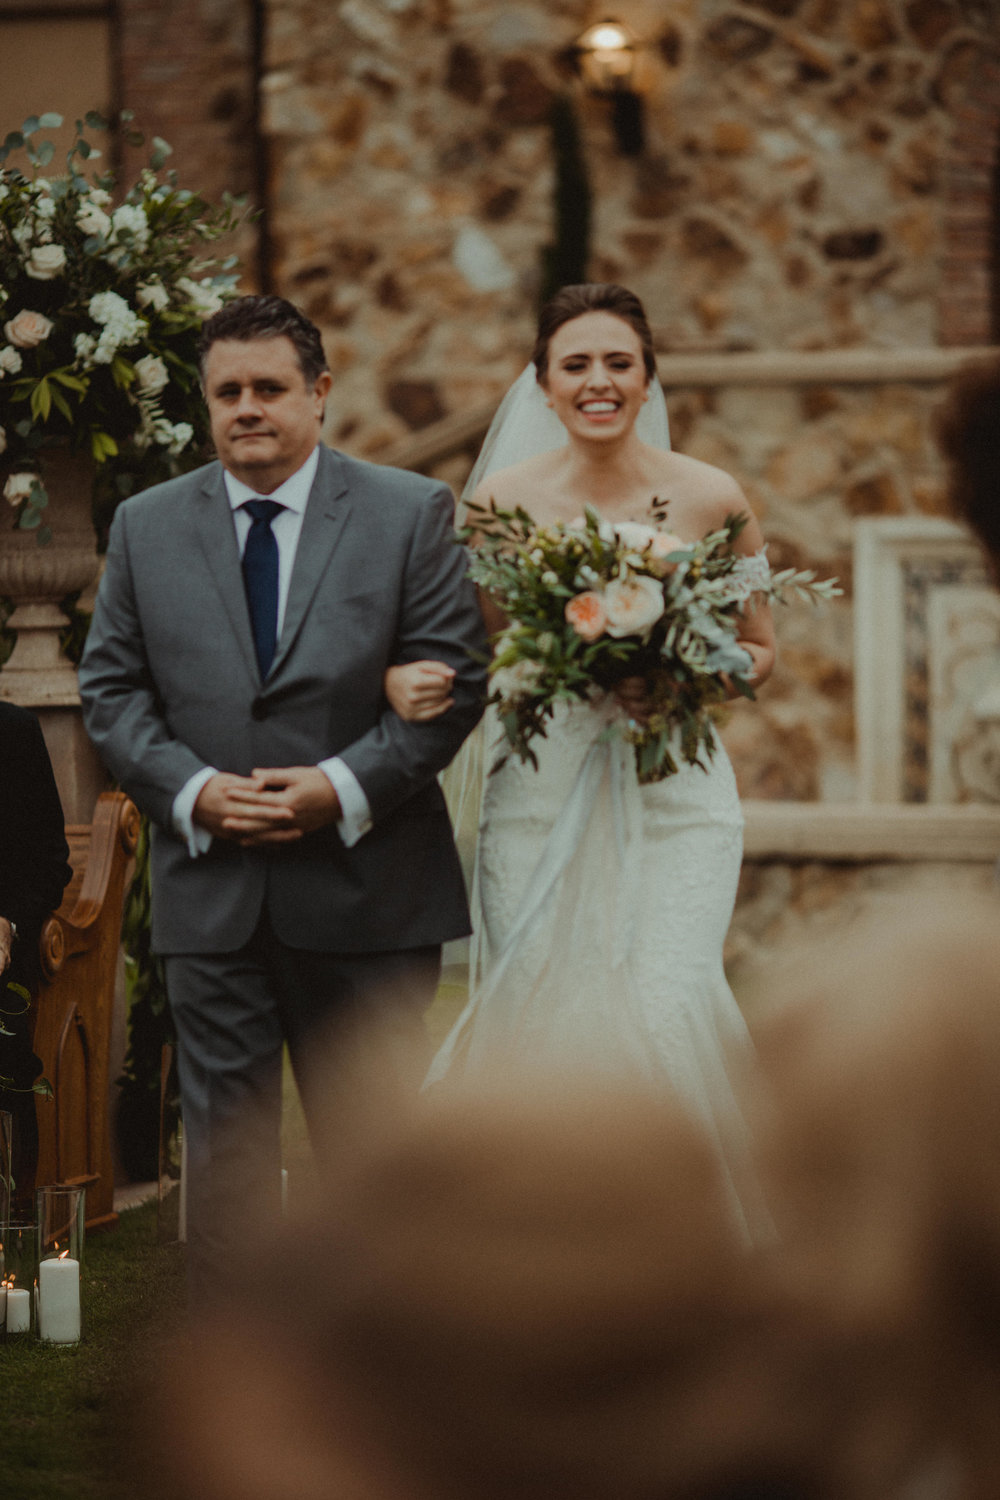 More happiness as the bride is escorted by her father